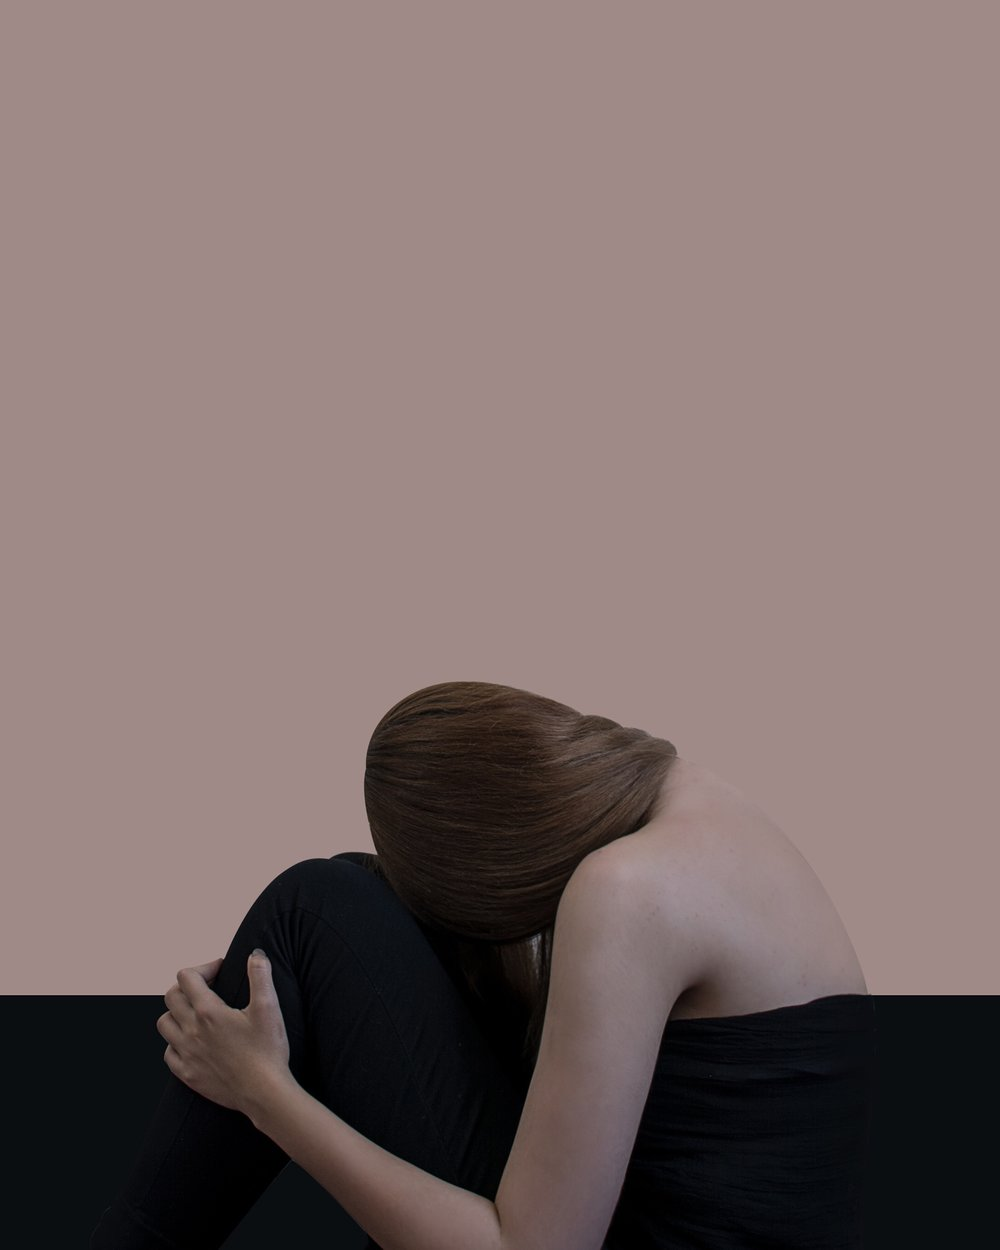 Healing from Rape: My Story    I was angry. Furious, all the time. I don't even know what I hated, but I hated it with all my heart. Him? The world? I still don't know who I was mad at during that time, but I was so angry I could hardly speak to anyone at all.  [Read more]